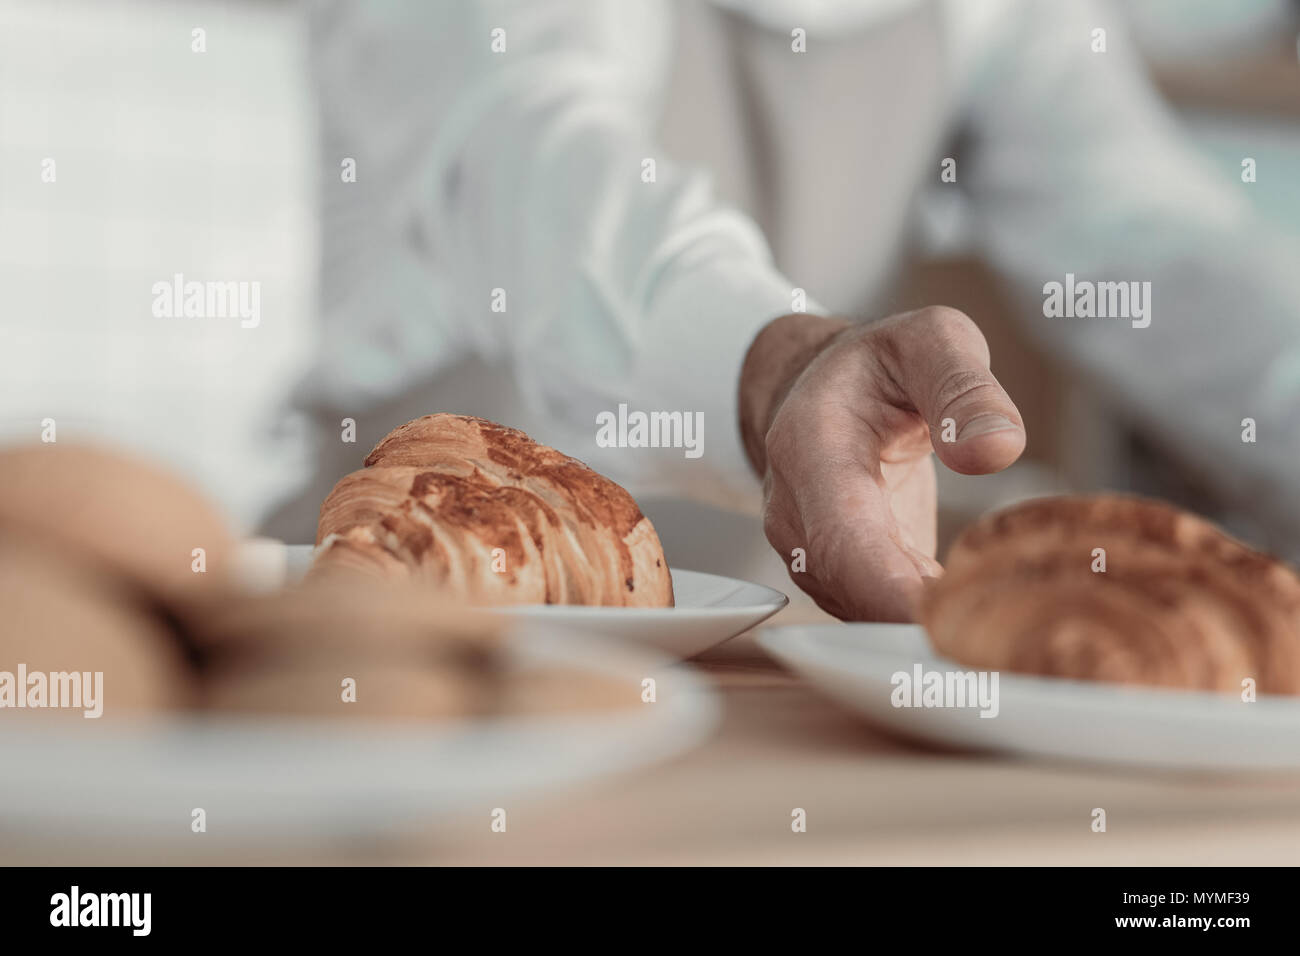 Focused photo on croissant that being on plate - Stock Image